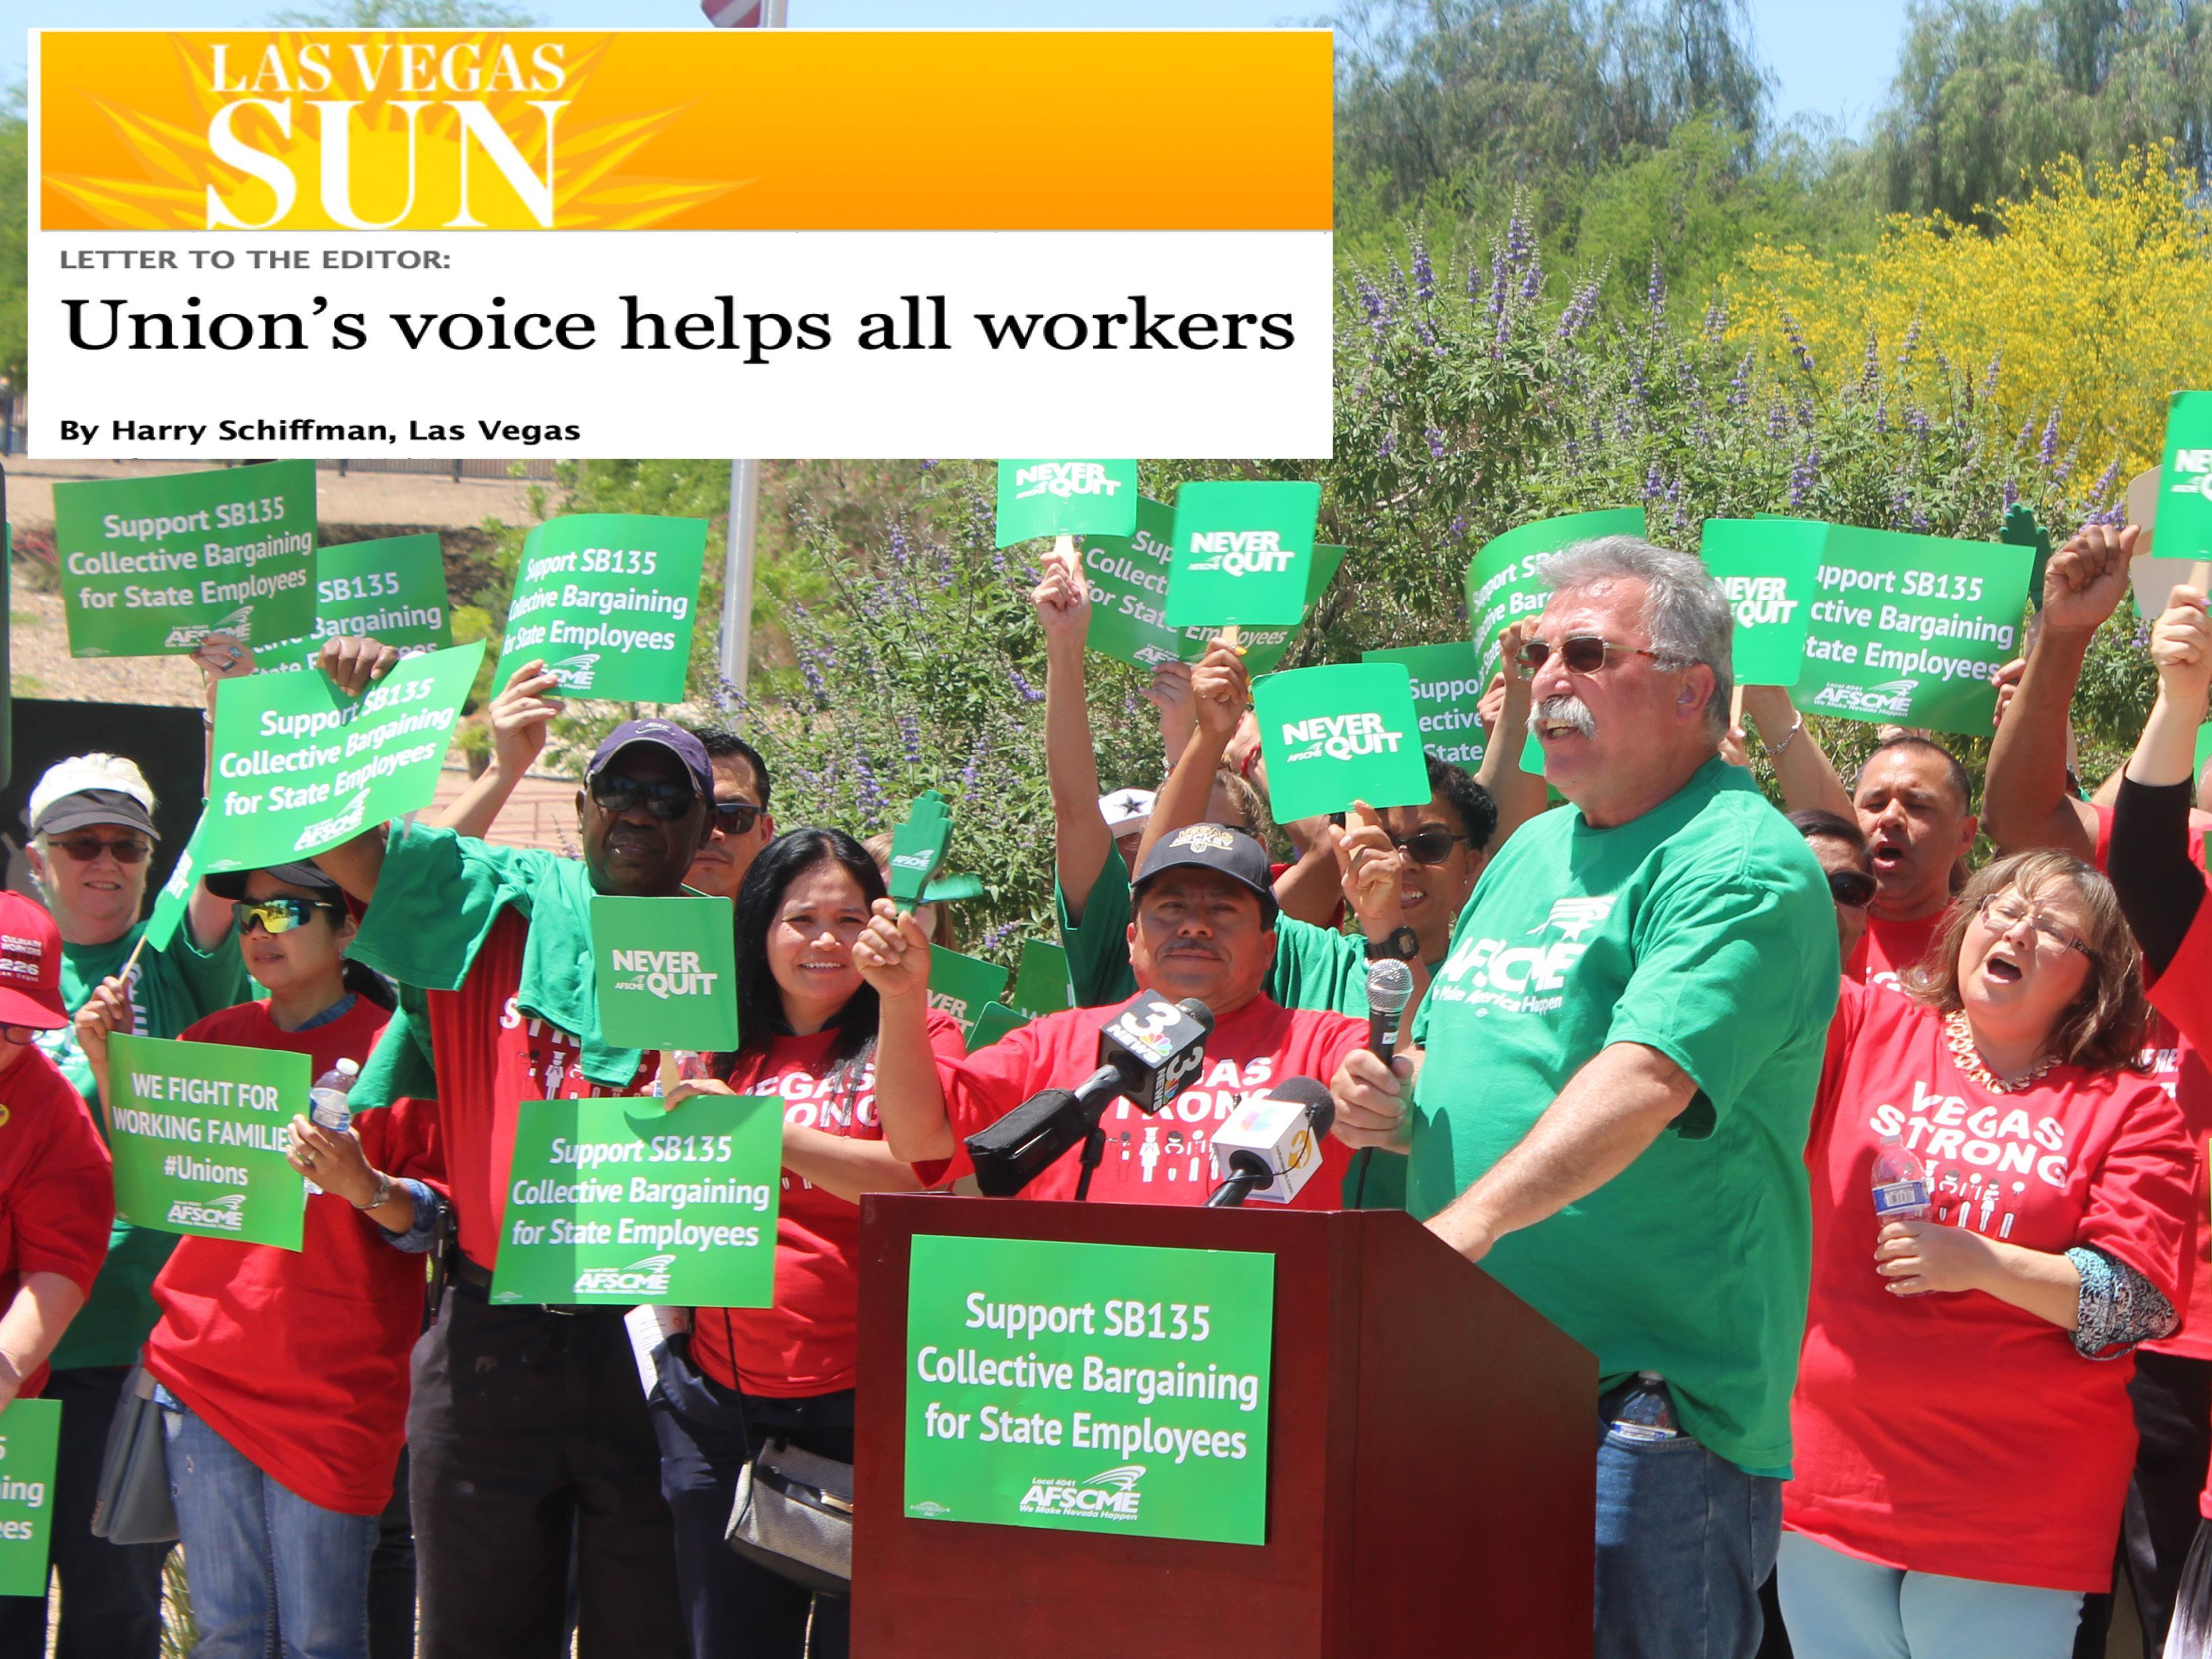 AFSCME Local 4041 president Harry Schiffman Letter to the Editor Las Vegas Sun